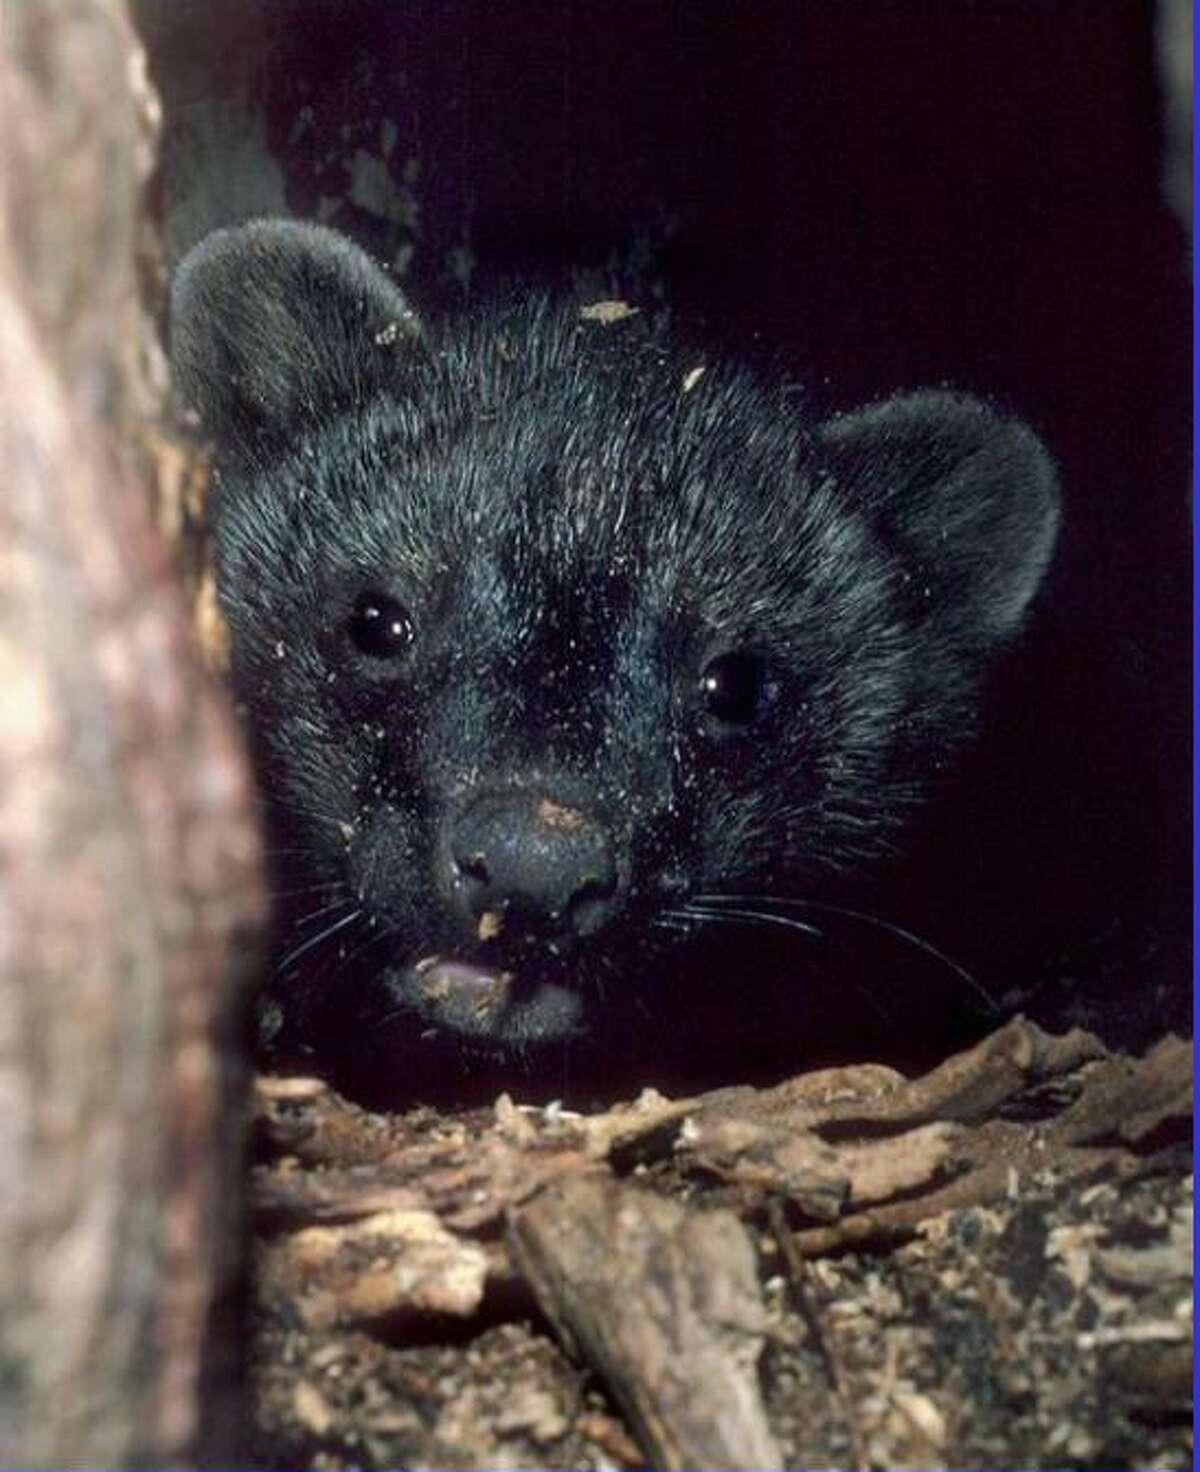 Ginny Apple will give a talk on Fisher Cats Oct. 30 on Zoom, presented by the Hunt Library in Falls Village.